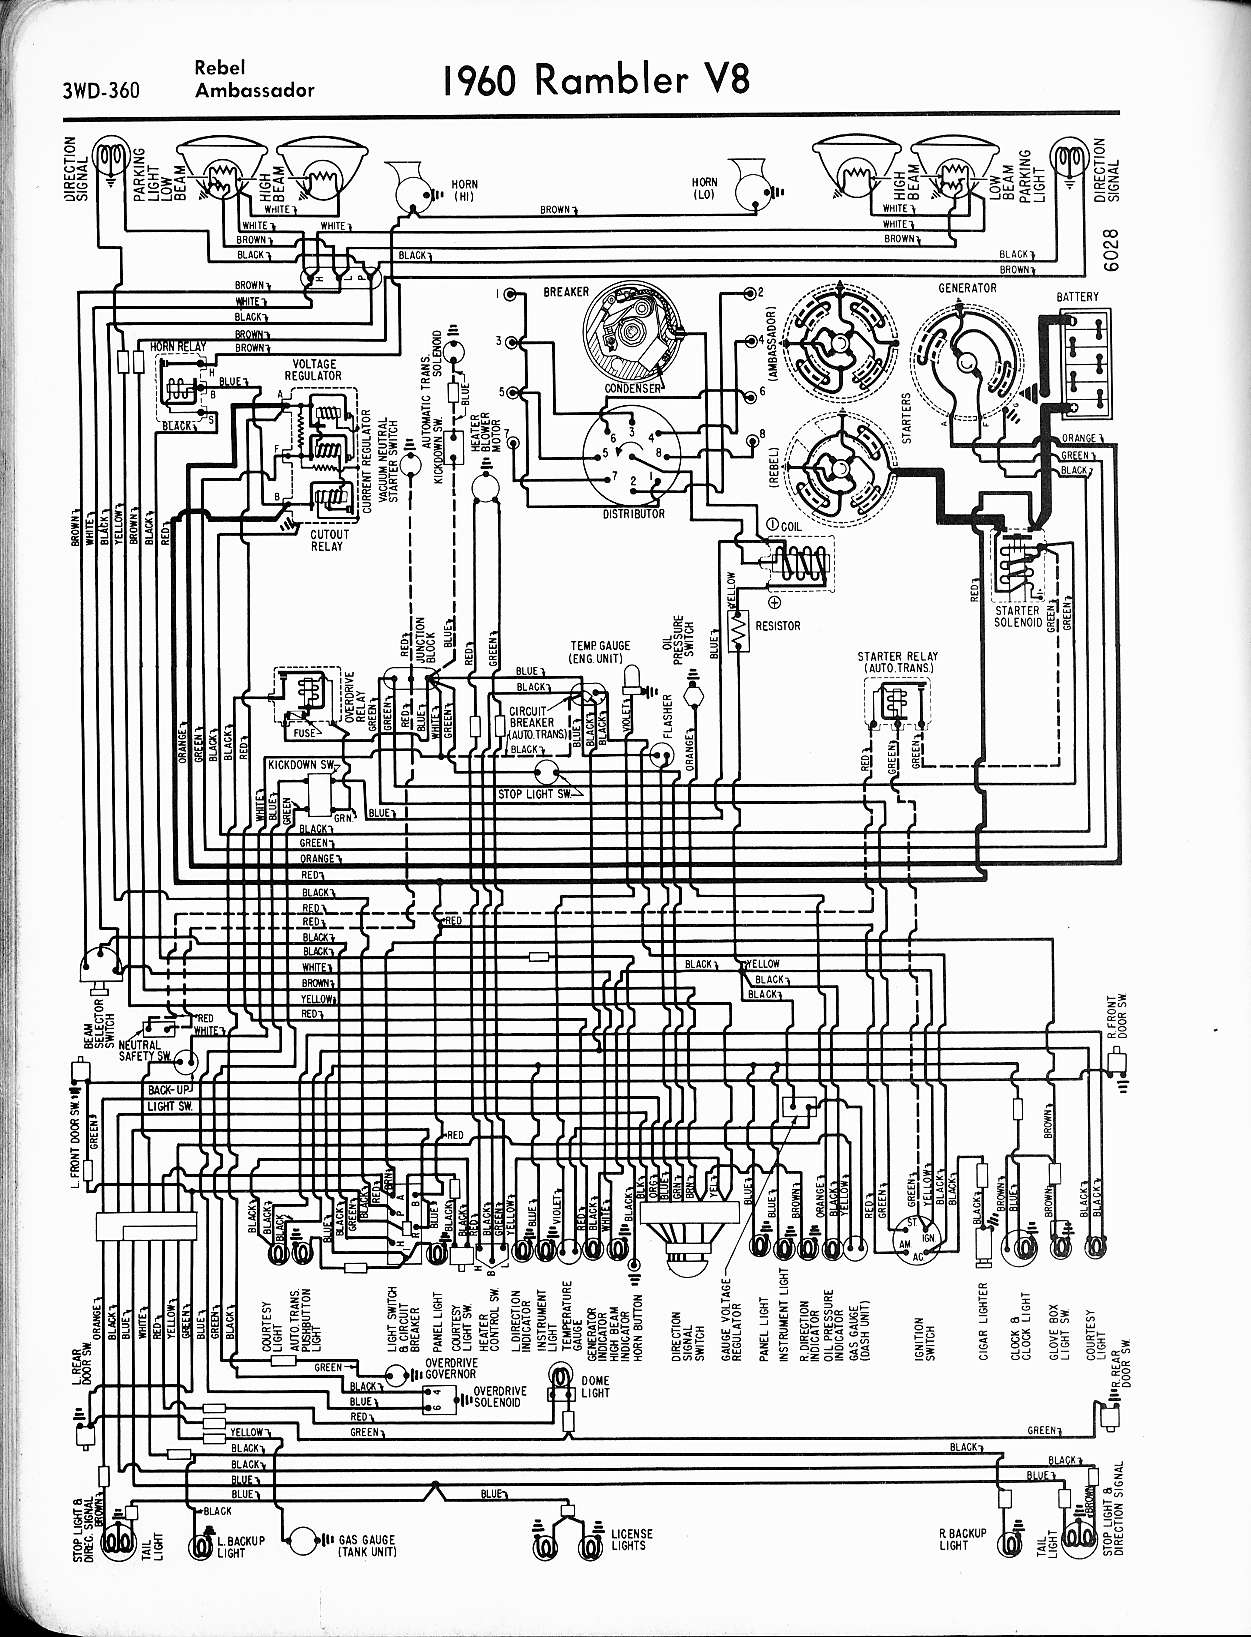 MWire5765 360 rambler wiring diagrams the old car manual project amc rebel wiring diagram at edmiracle.co